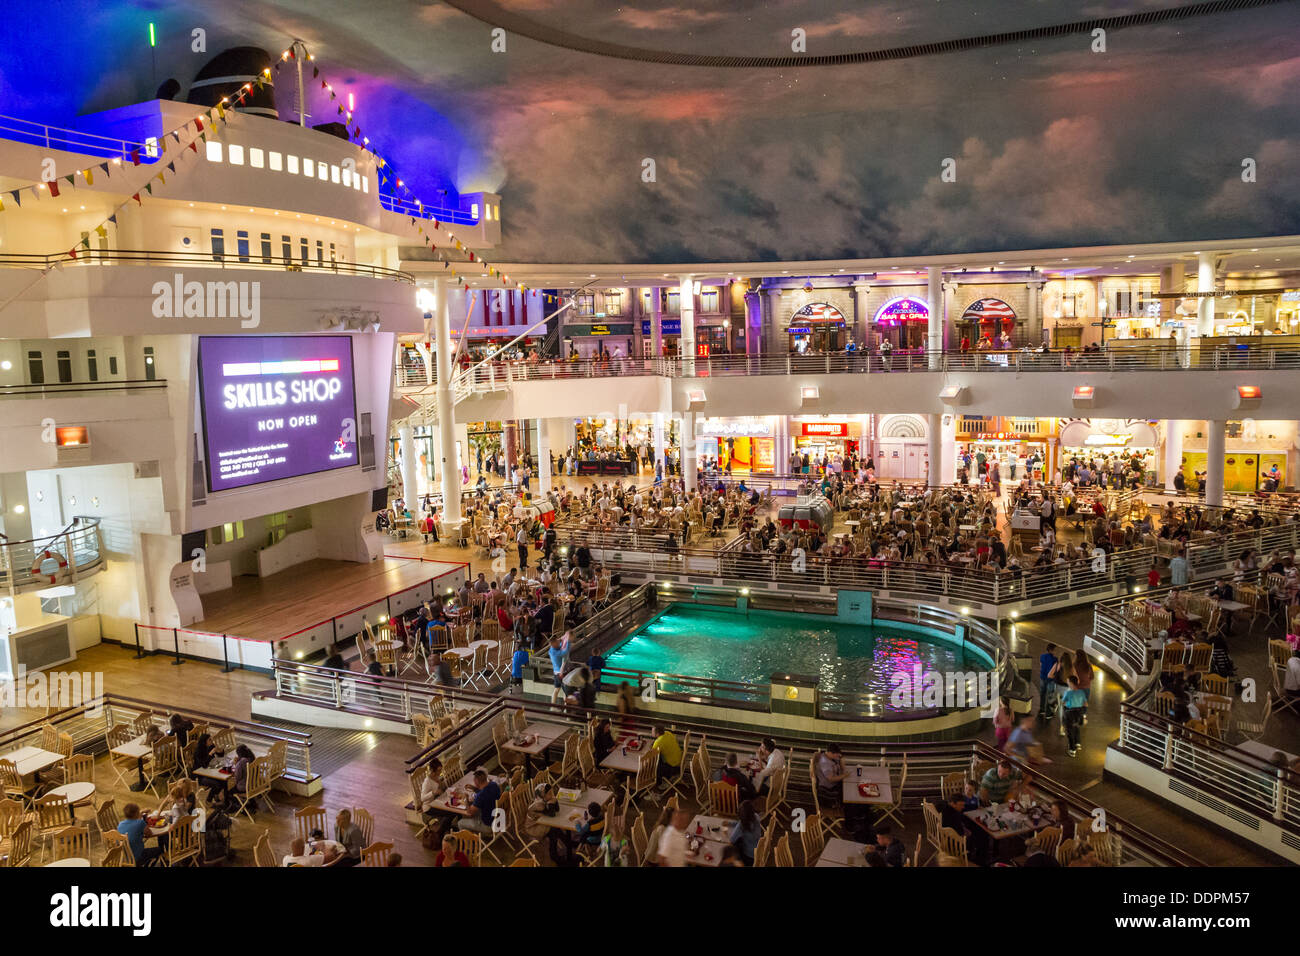 The Orient Food Court in The Intu Trafford Centre, Manchester, England. - Stock Image